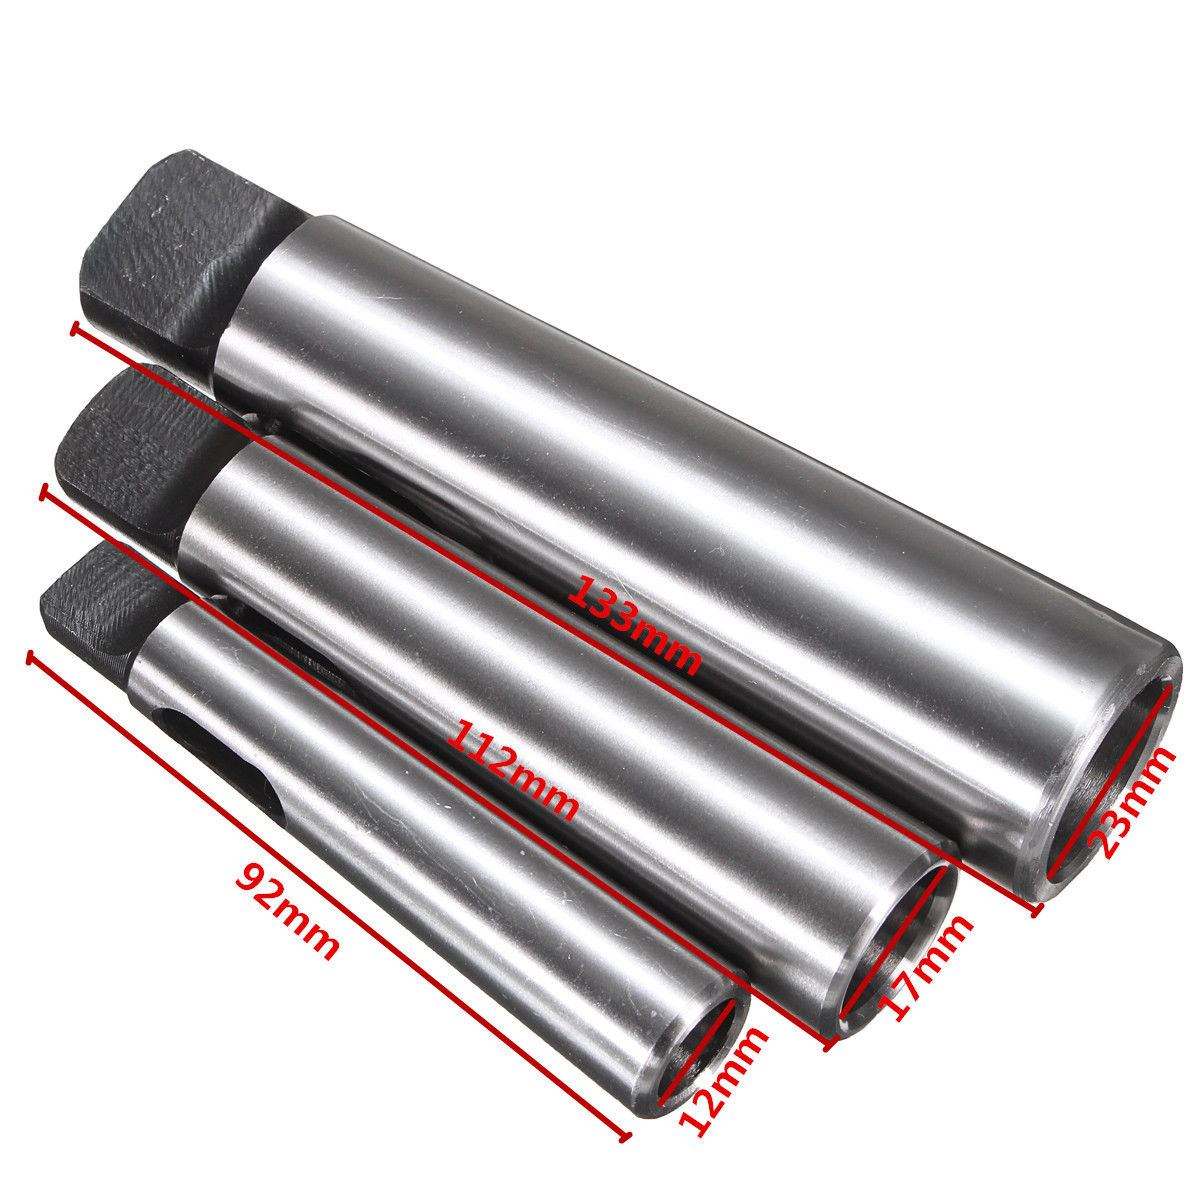 3pcs Mayitr Morse Taper Adapter MT1 to MT2 MT2 to MT3 MT3 to MT4 Reducing Drill Chuck Sleeve For Drilling Machine